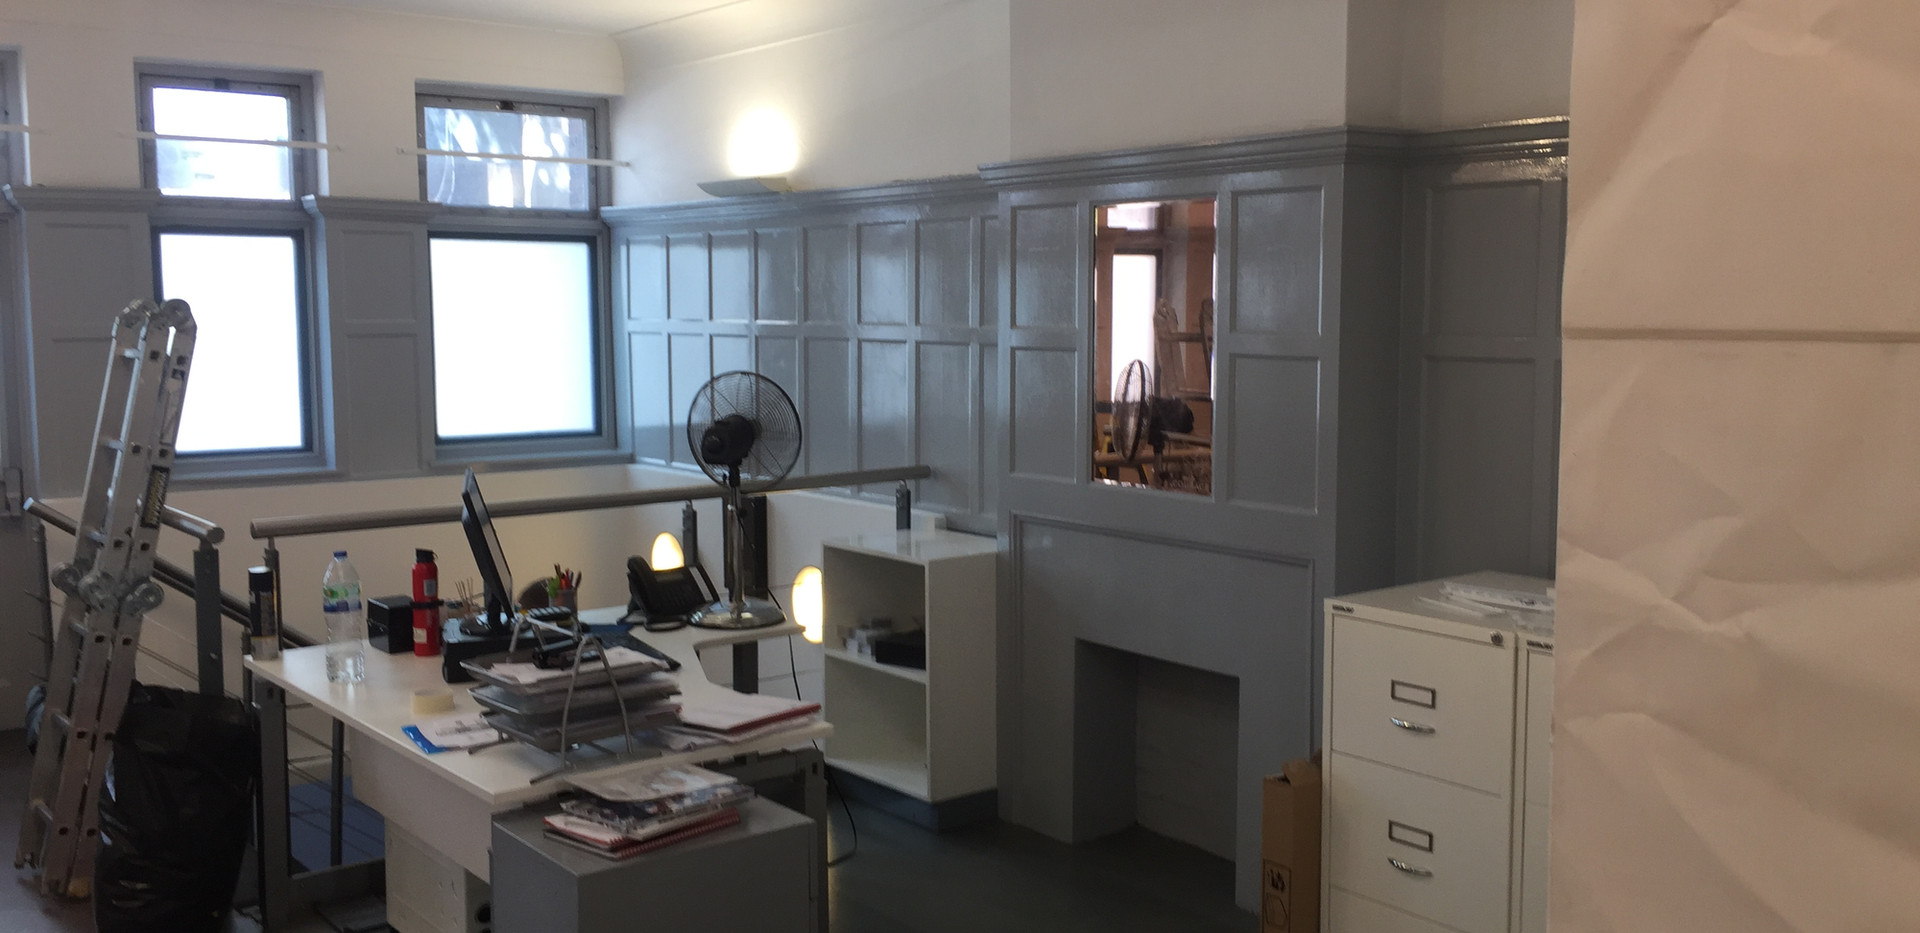 Office painting and decorating in South London